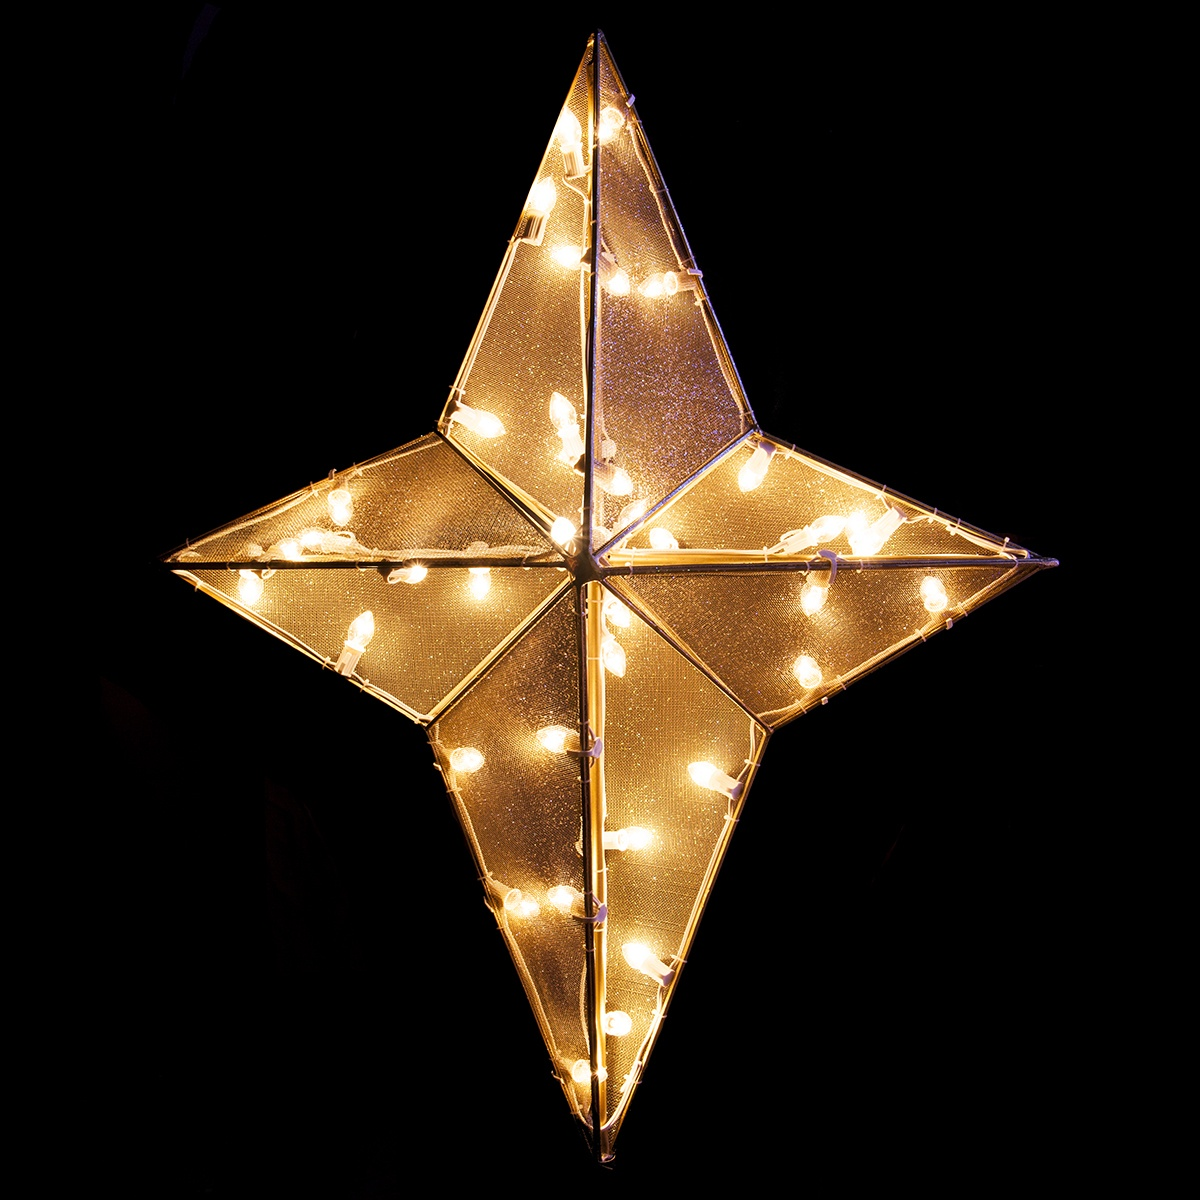 Christmas Decorations 4 Dimensional Nativity Star